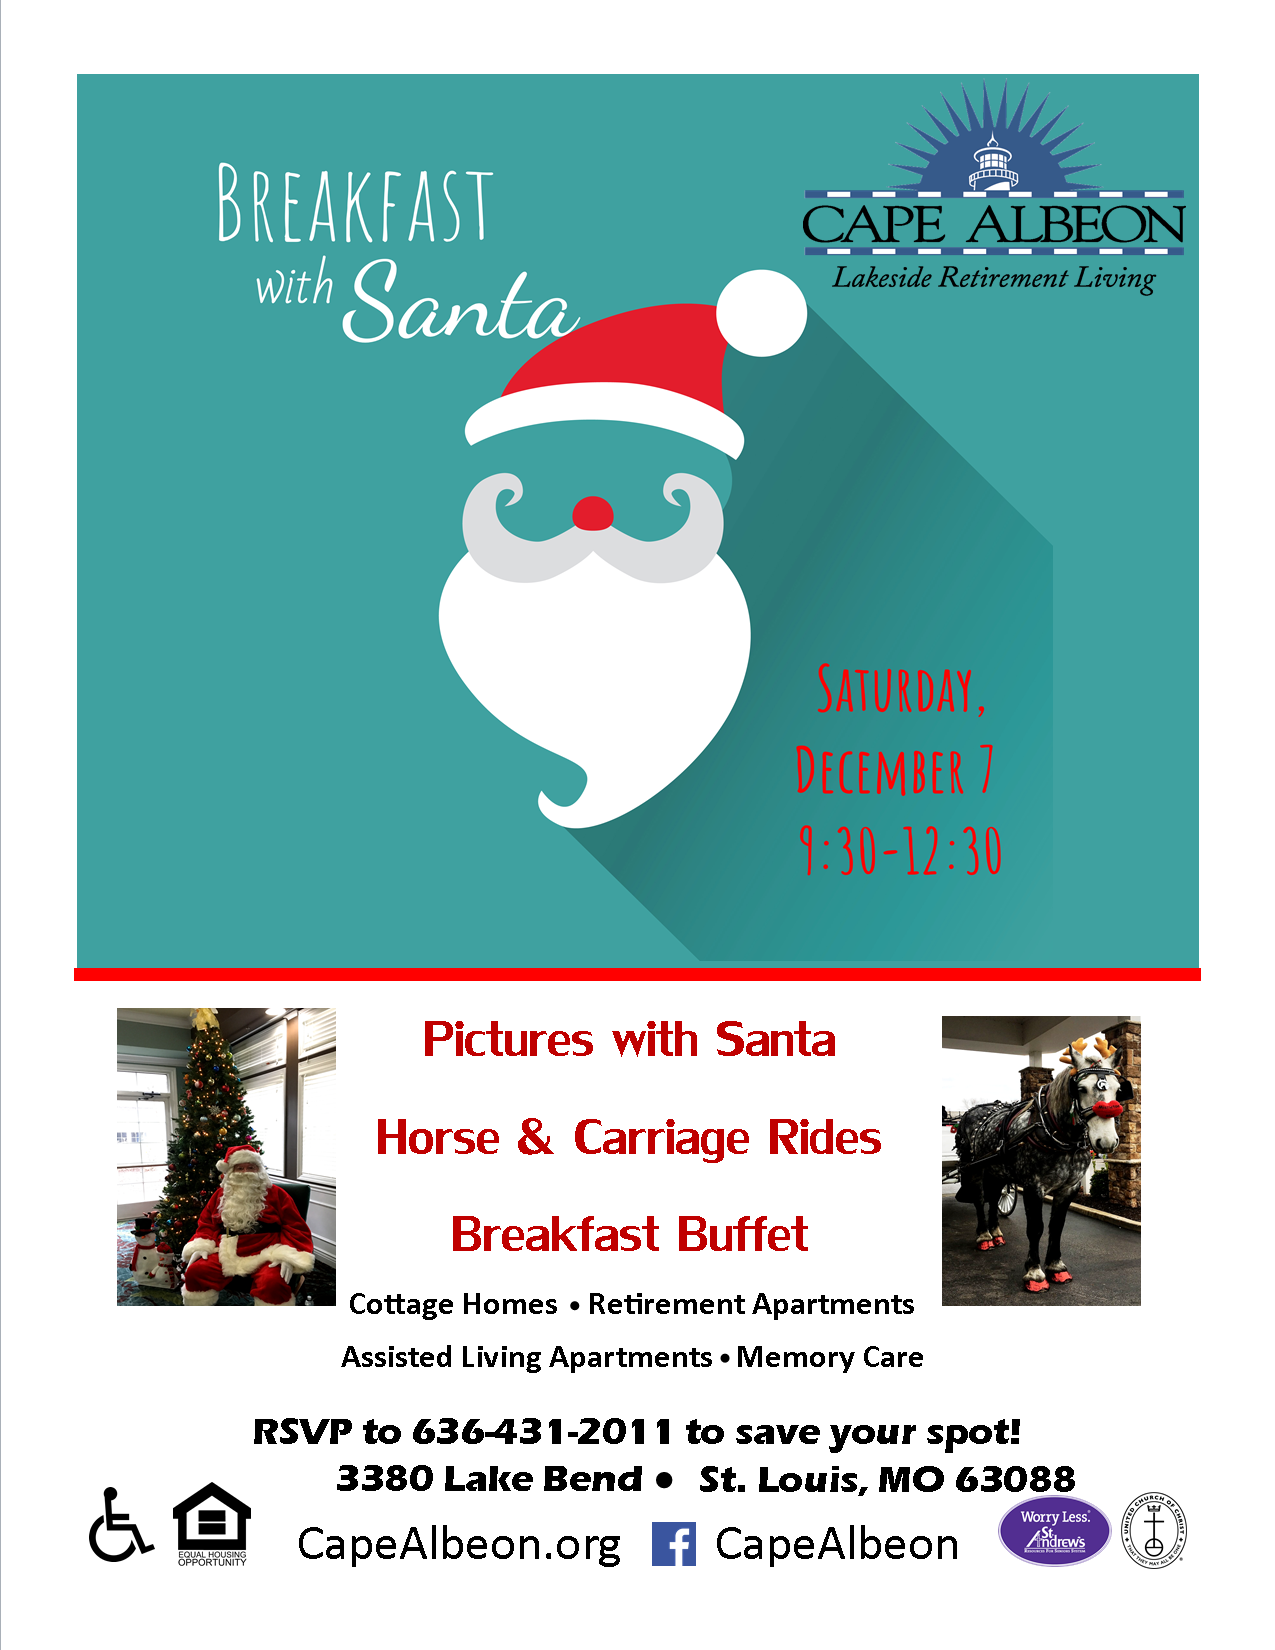 Cape Albeon hosts Breakfast with Santa St. Louis